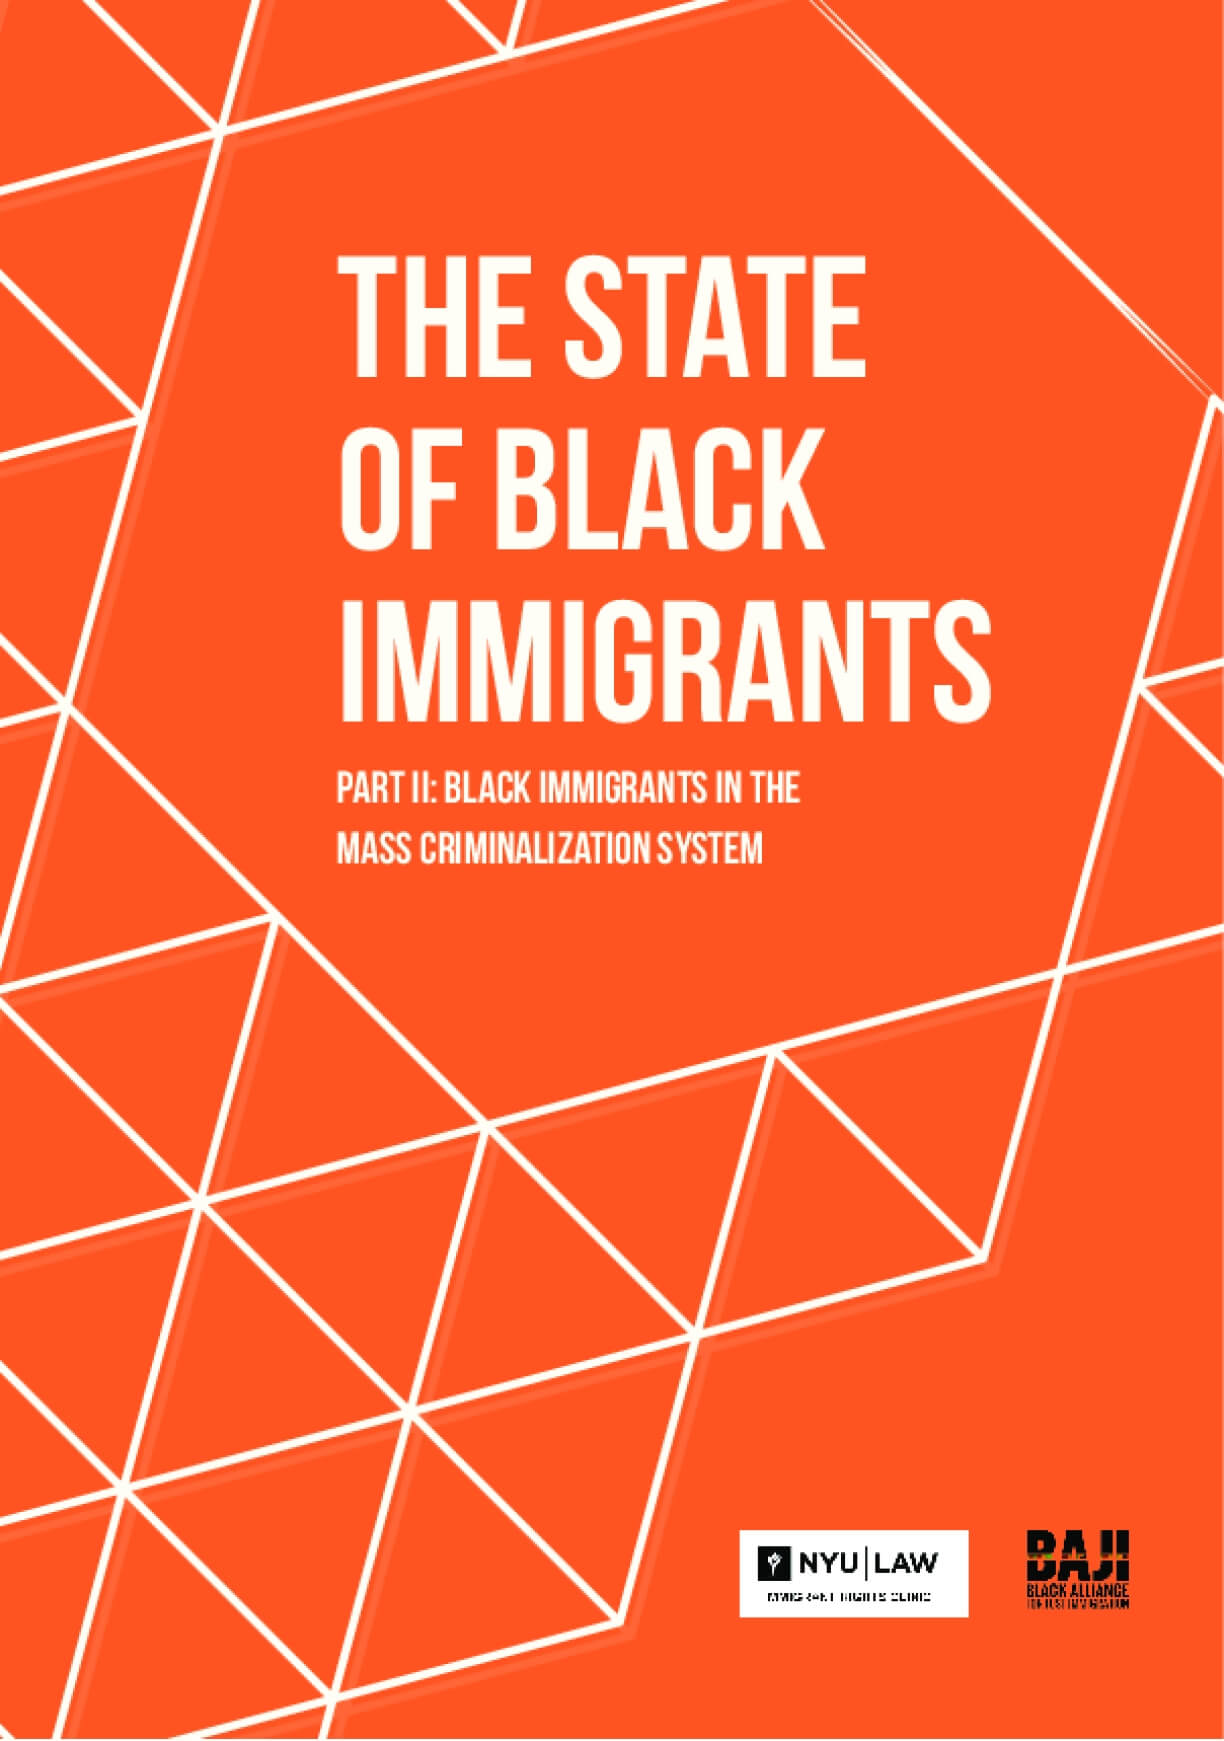 The State of Black Immigrants Part II: Black Immigrants in the Mass Criminalization System